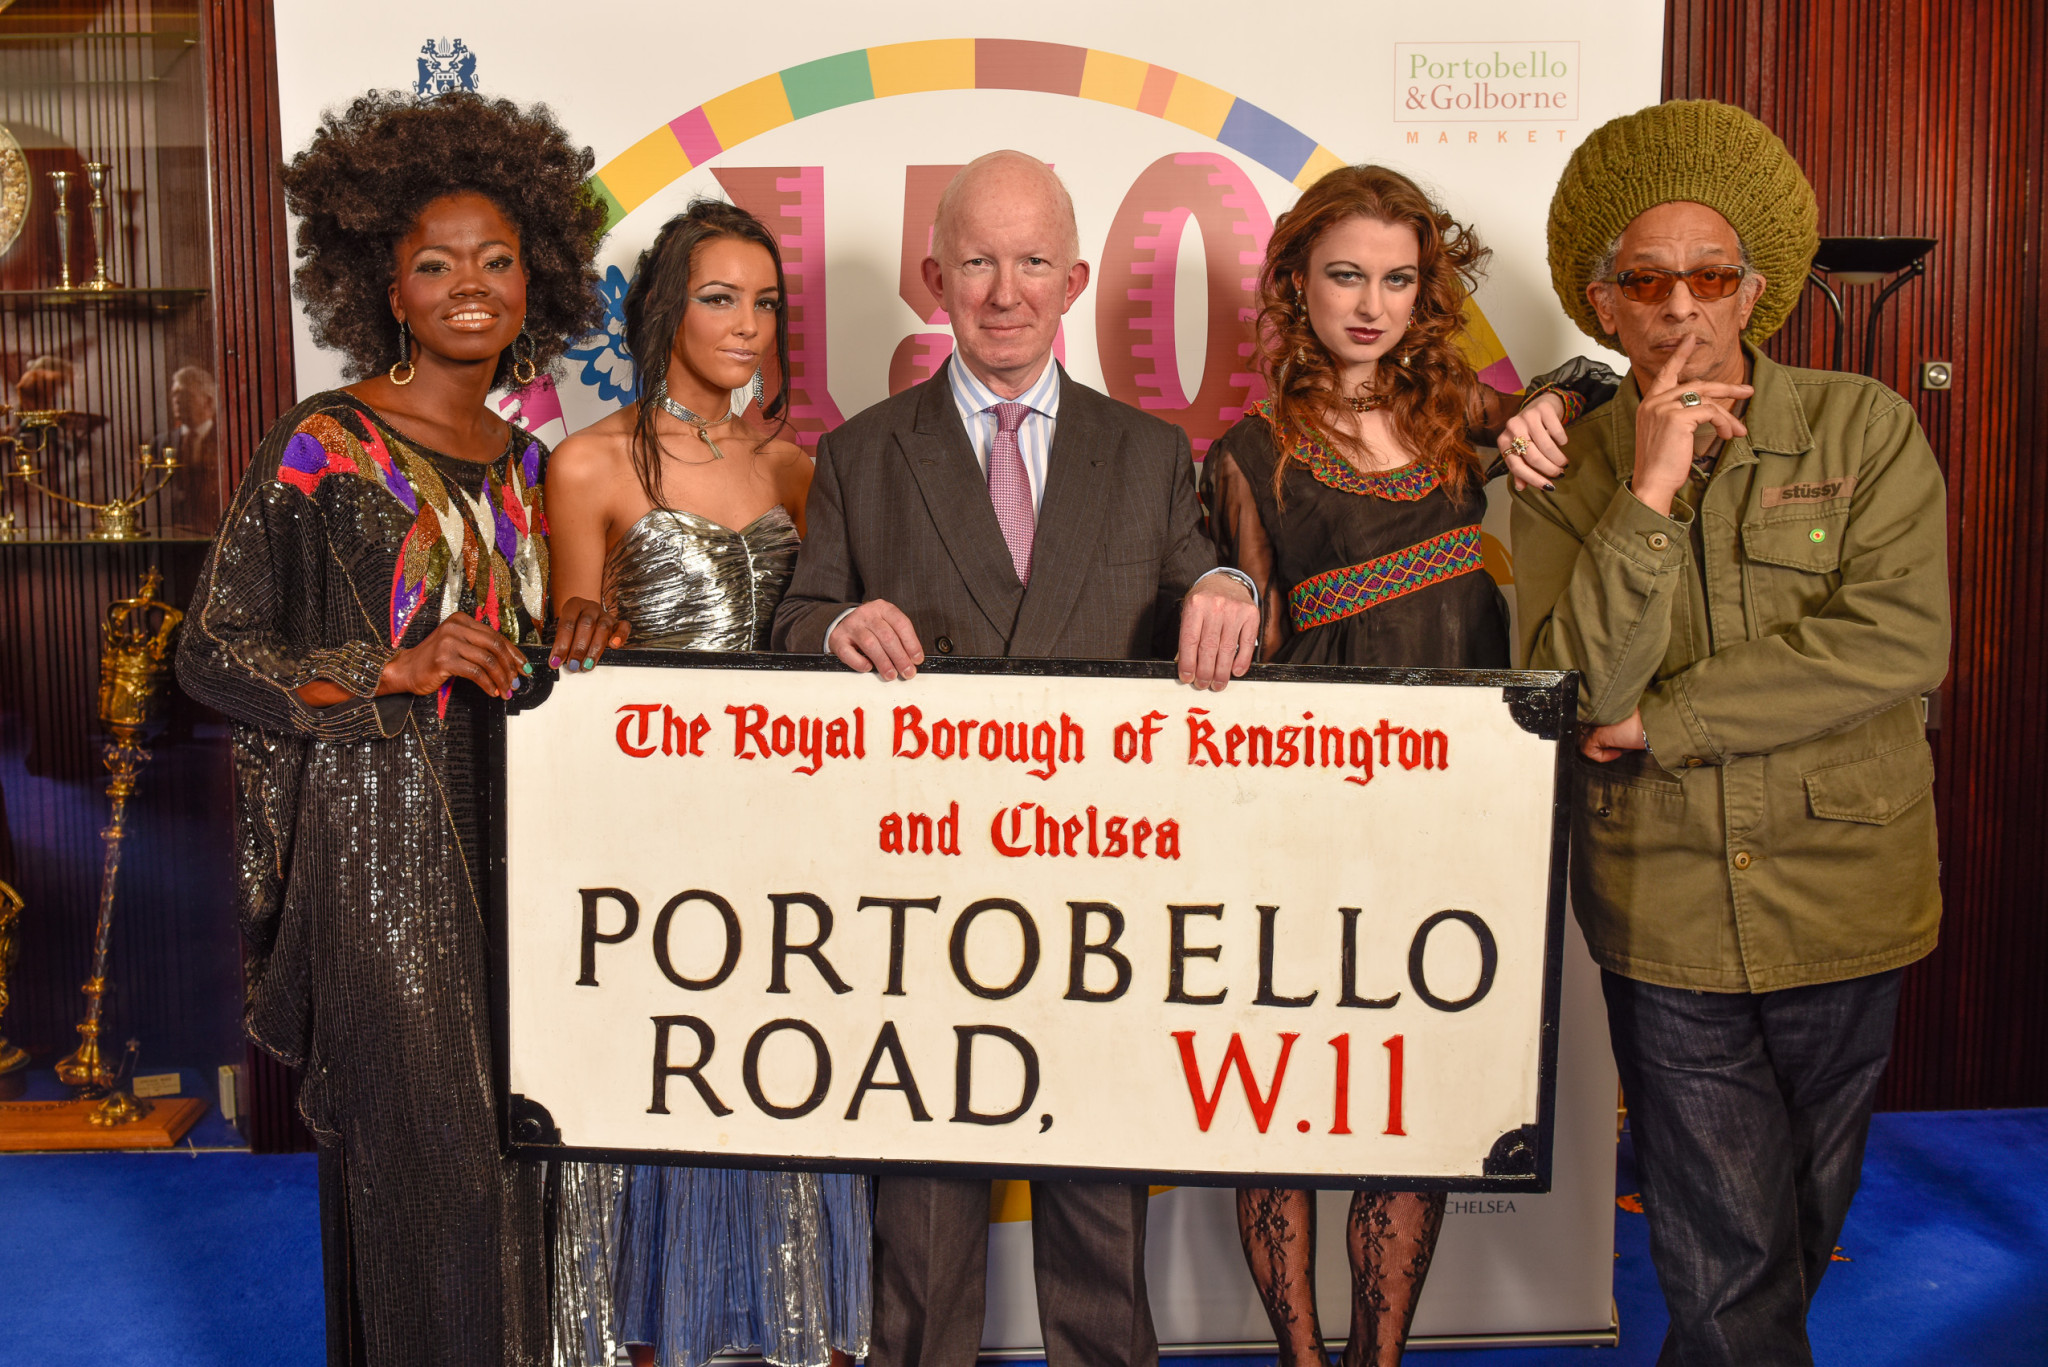 Celebrating 150 years of Portobello and Golborne Road Markets. Models wearing vintage from Portobello traders. Council Leader Cllr Nick Paget-Brown (middle), Donn Letts (right) photo press launch